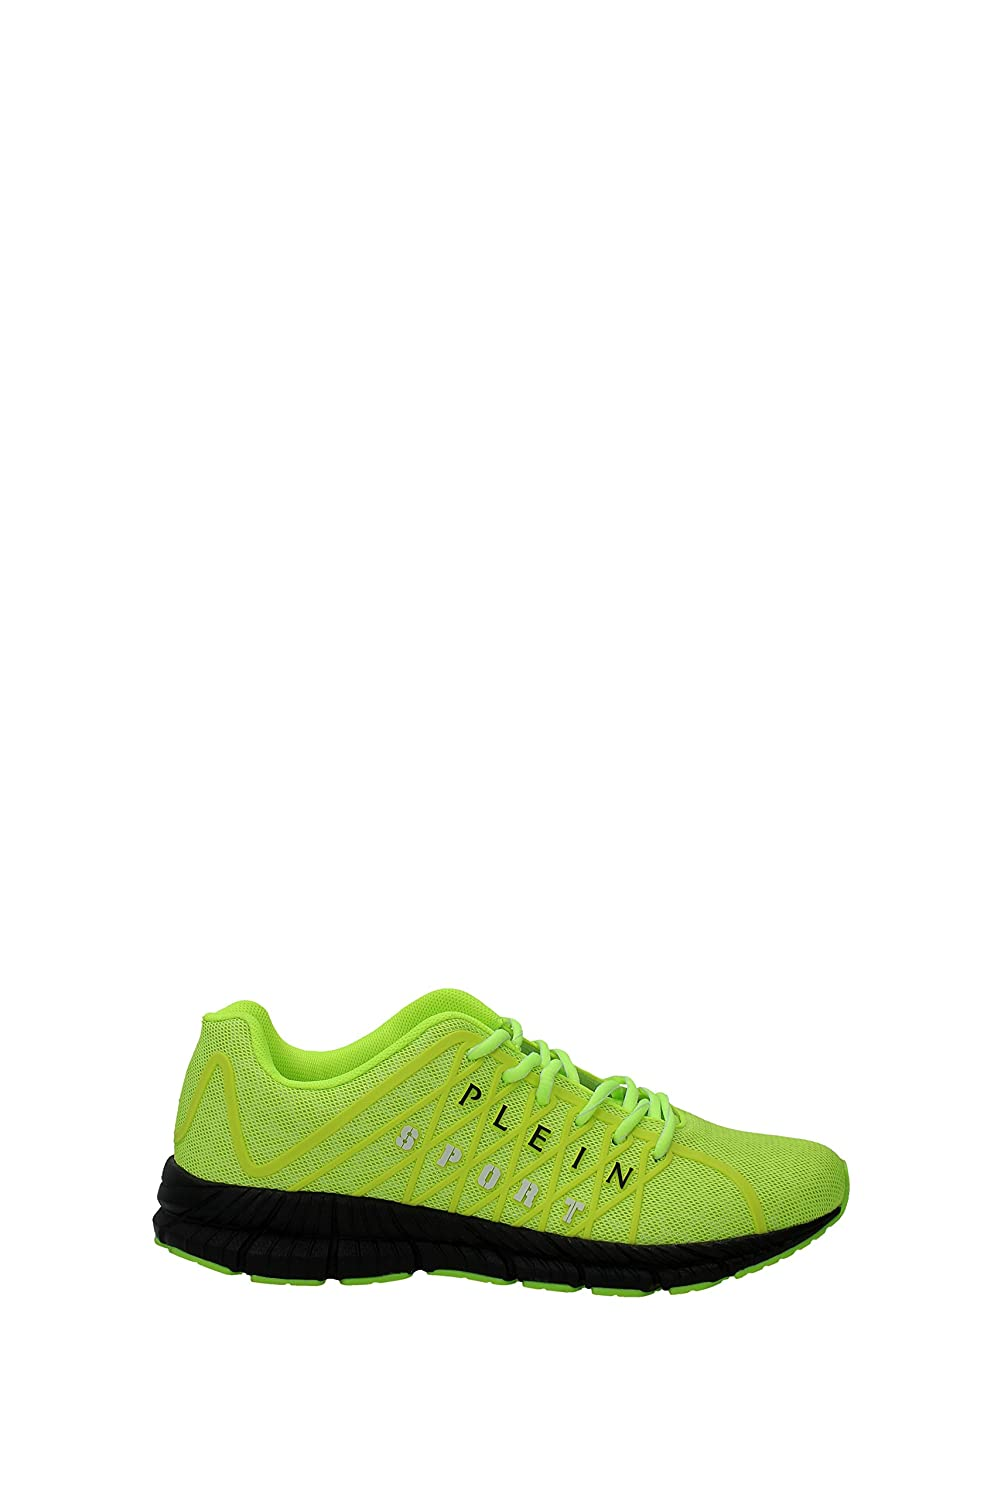 b0e775f16eb Philipp Plein Sneakers Plein Sport Runner Matrix Men - Fabric  (MSC0619STE003N09) 6.5 UK: Amazon.co.uk: Shoes & Bags